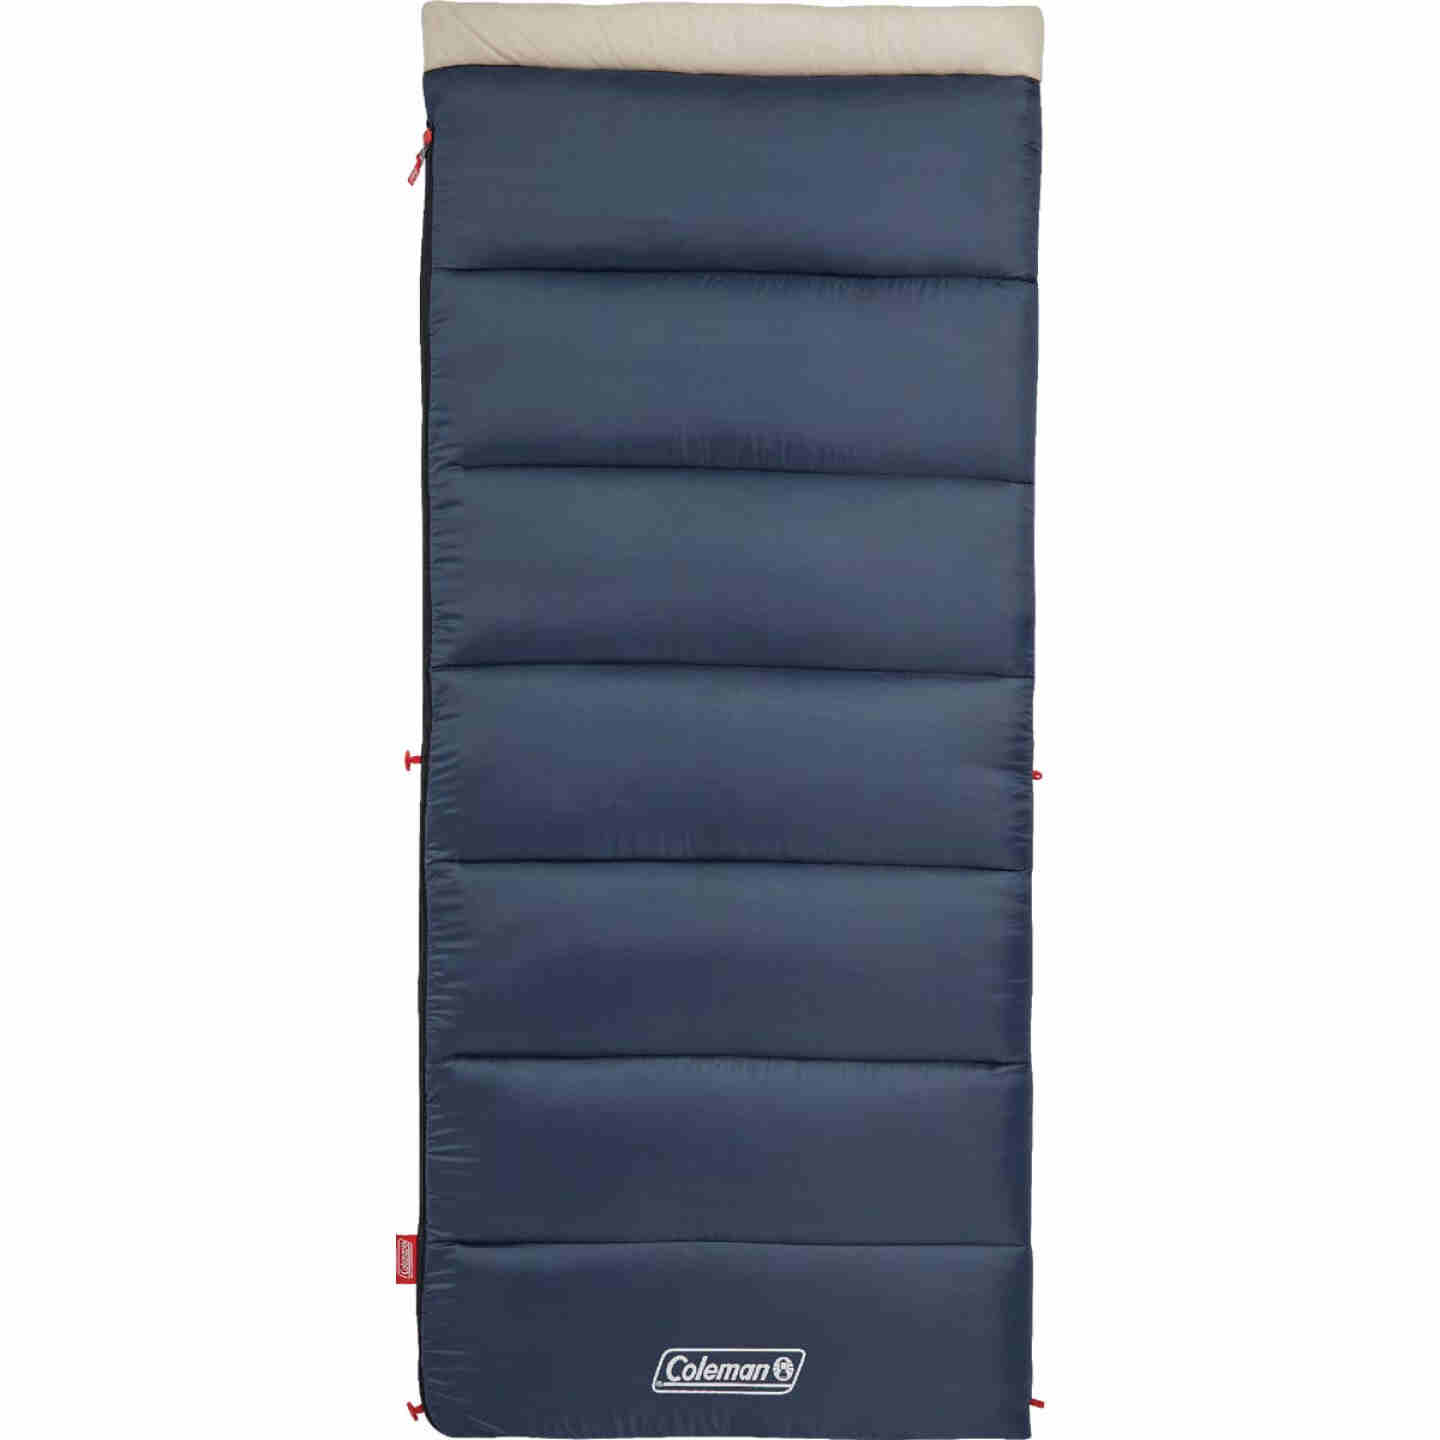 Coleman 30 Degree 33 In. W. x 75 In. L. Blue Adult Sleeping Bag Image 1